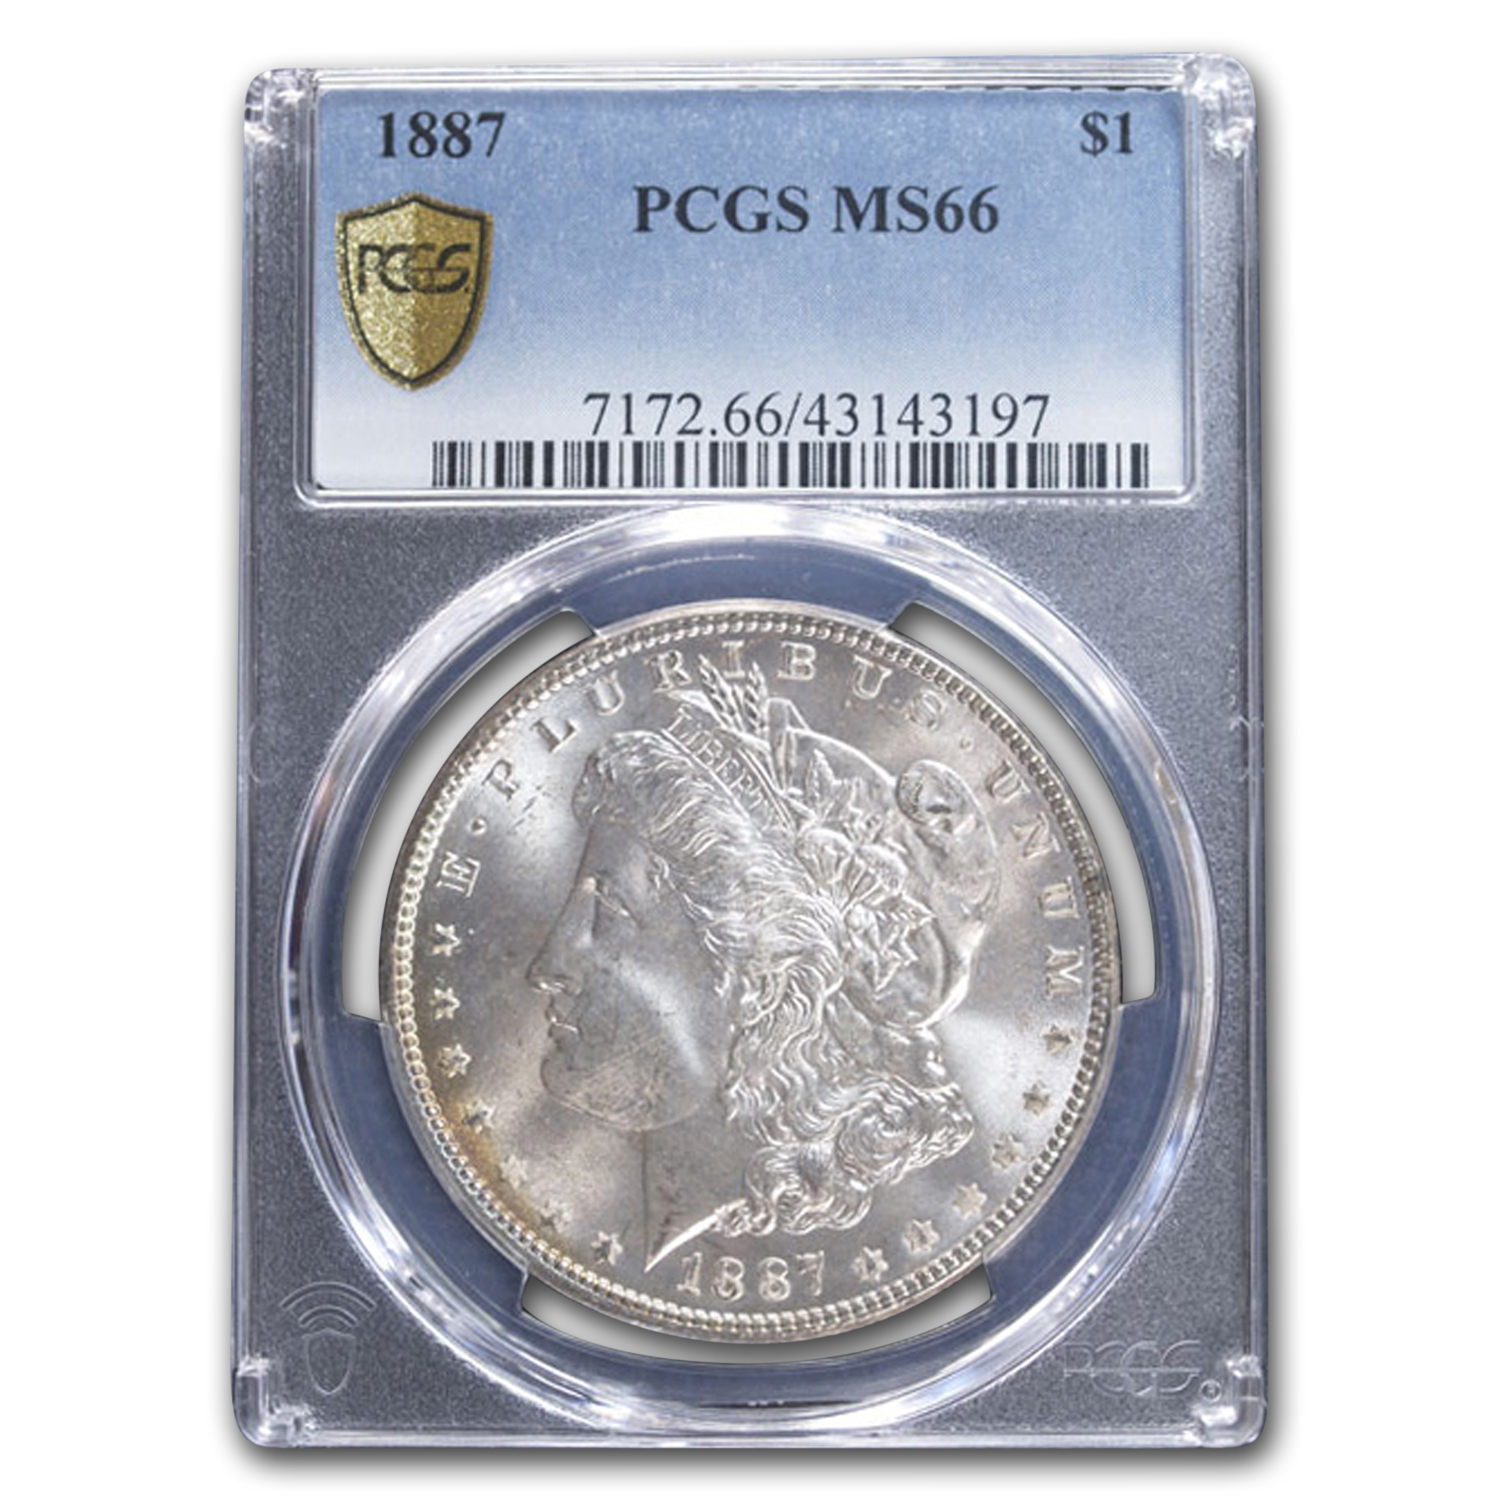 1887 Morgan Dollar - MS-66 PCGS